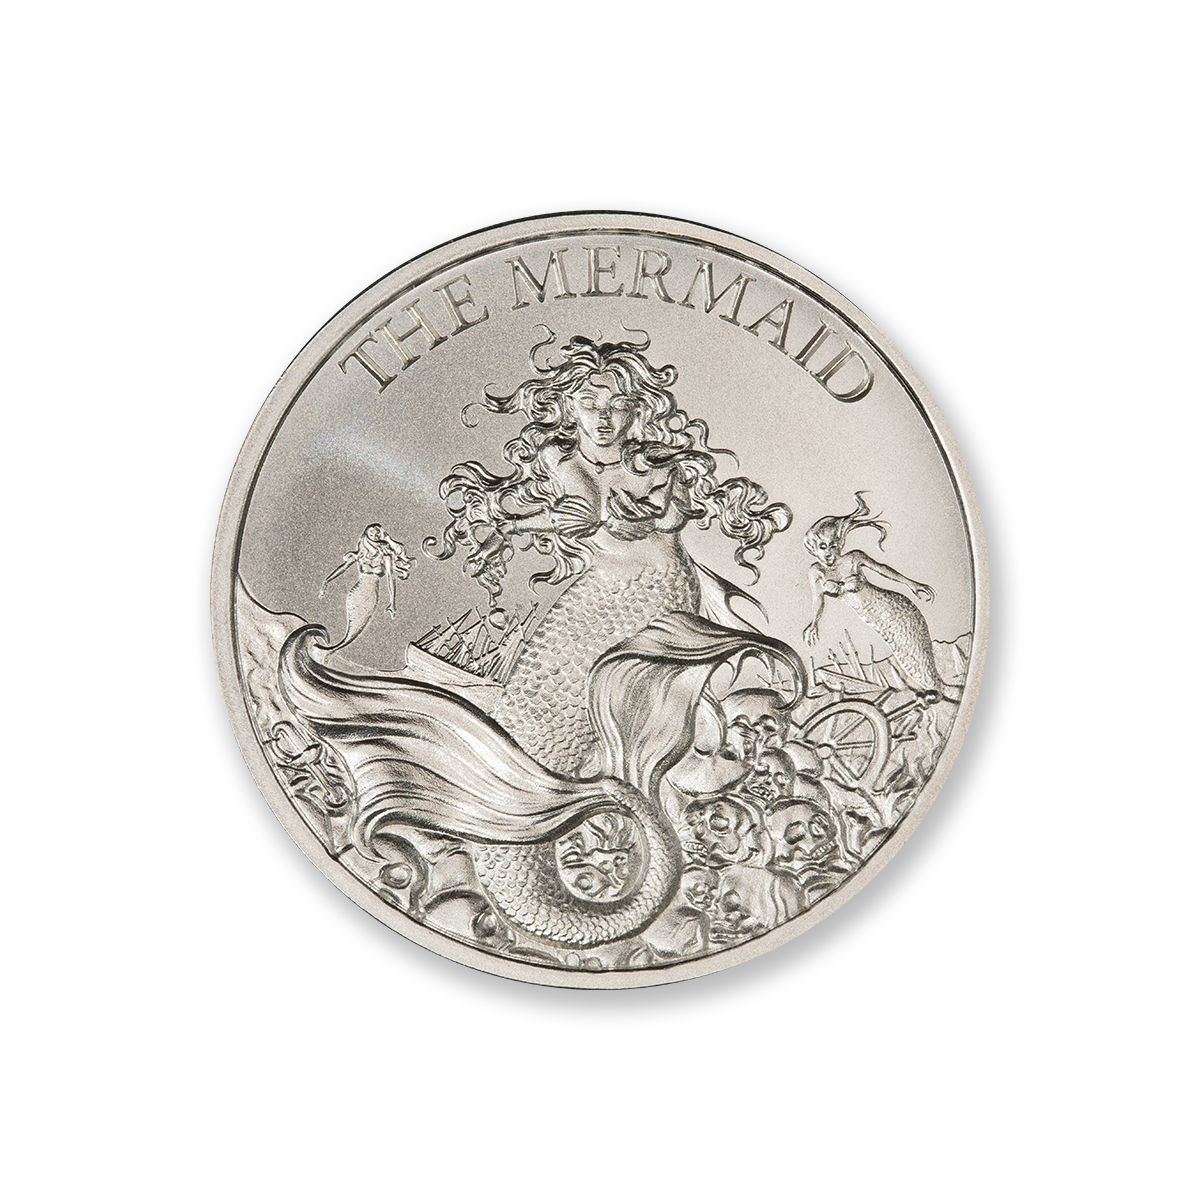 THE MERMAID – 1 TROY OUNCE – 39MM